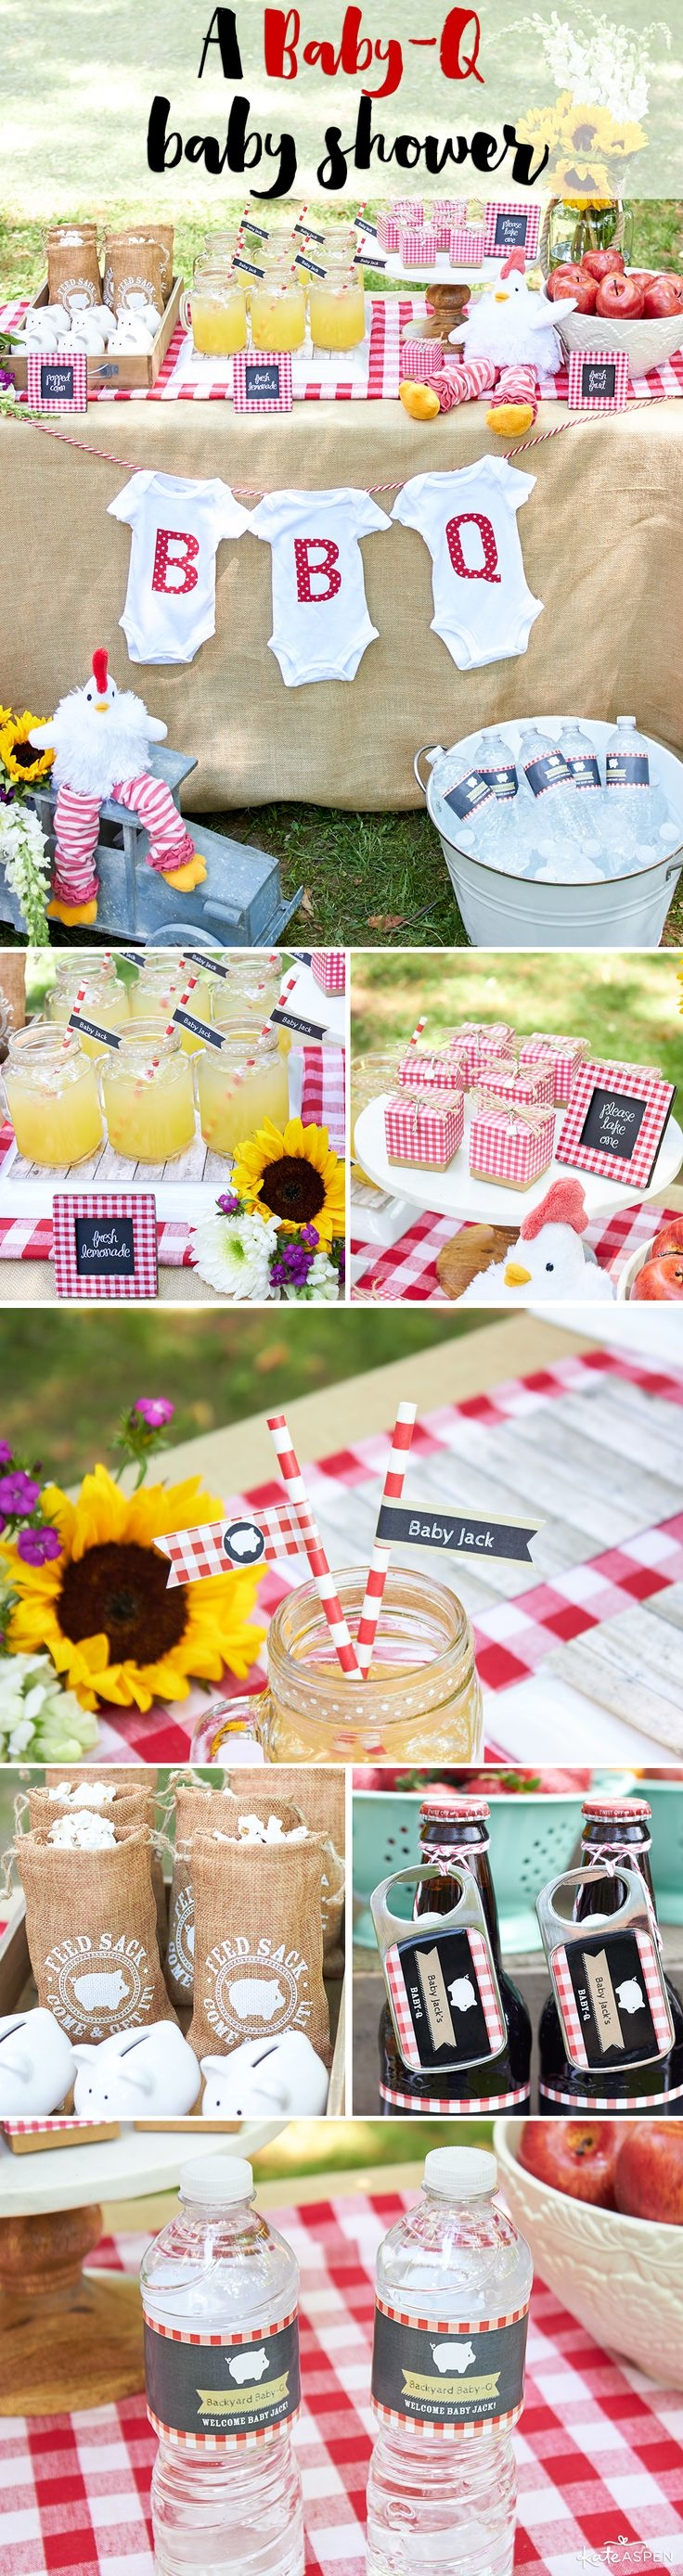 The Best Baby Shower Games Ideas Showe Outdoor Decorating Ideas: Medium  Size